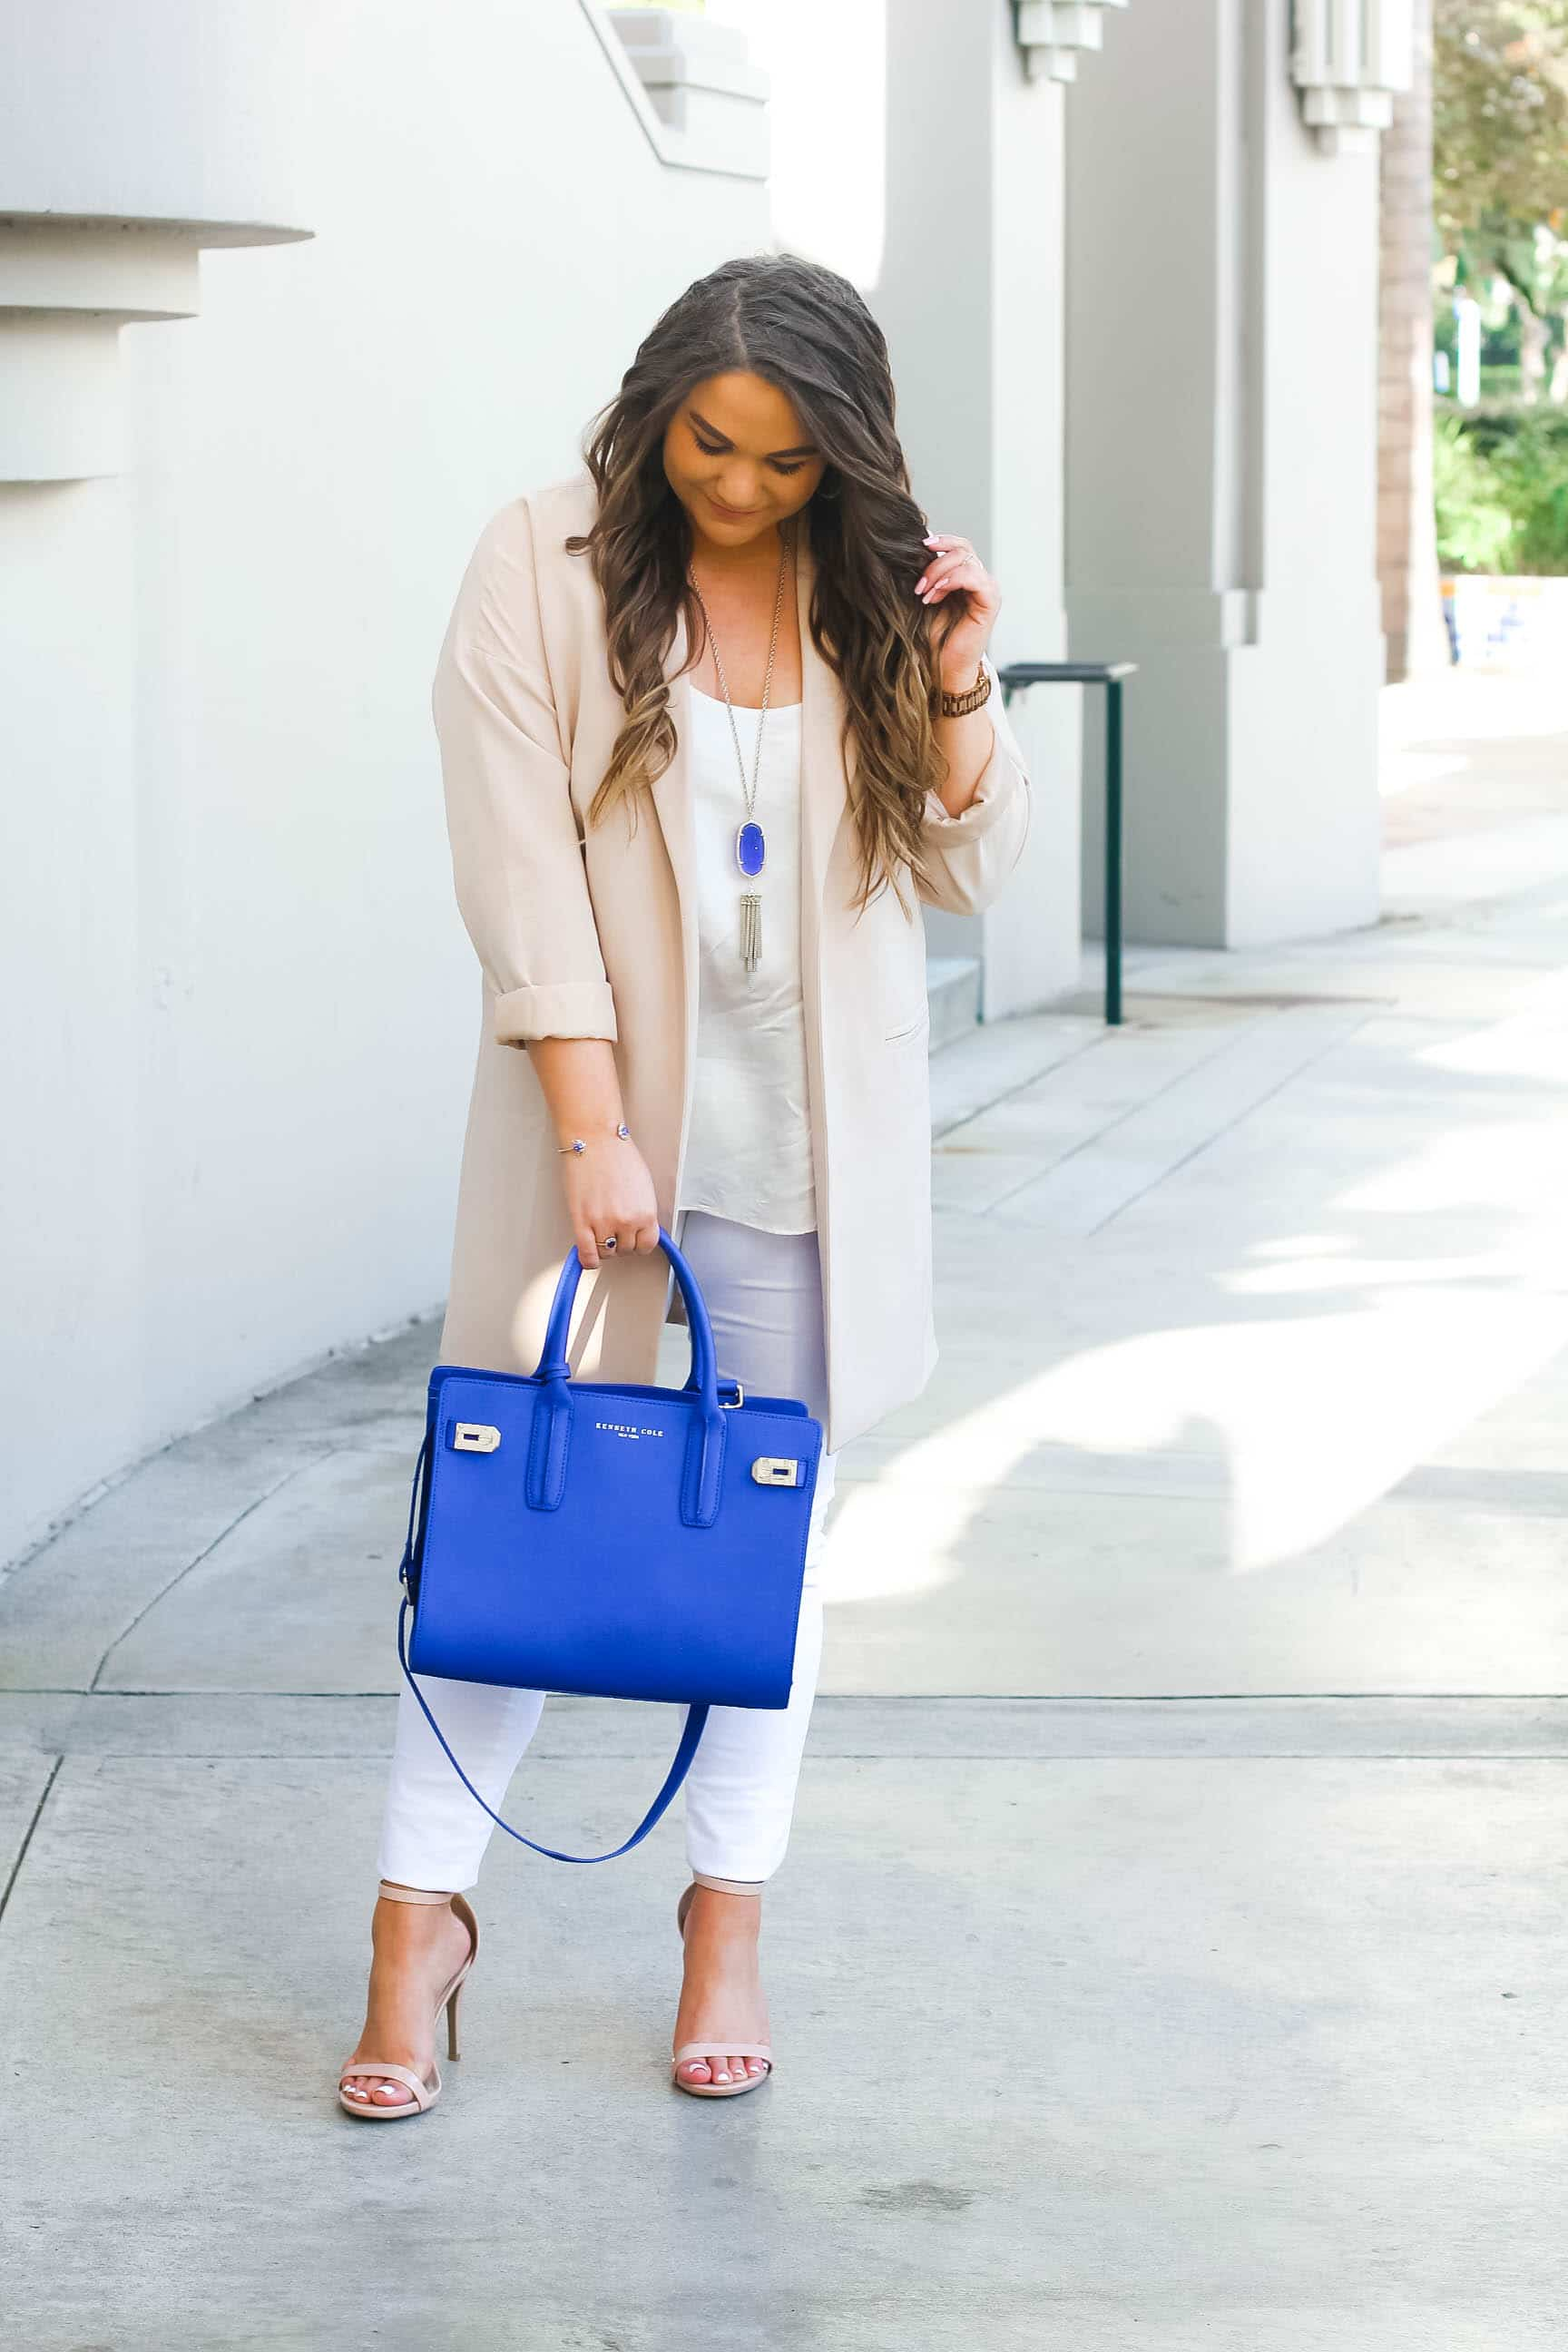 missyonmadison, fashion blogger, missyonmadison instagram, outfit inspo, la blogger, cobalt blue satchel, style blogger, summer style, nude ankle strap heels, old navy, white skinny jeans, old navy white rockstar jeans, beverly hills city hall, nude duster blazer, duster blazer, nude blazer, white chiffon camisole, topshop camisole, raybans, pop of color,